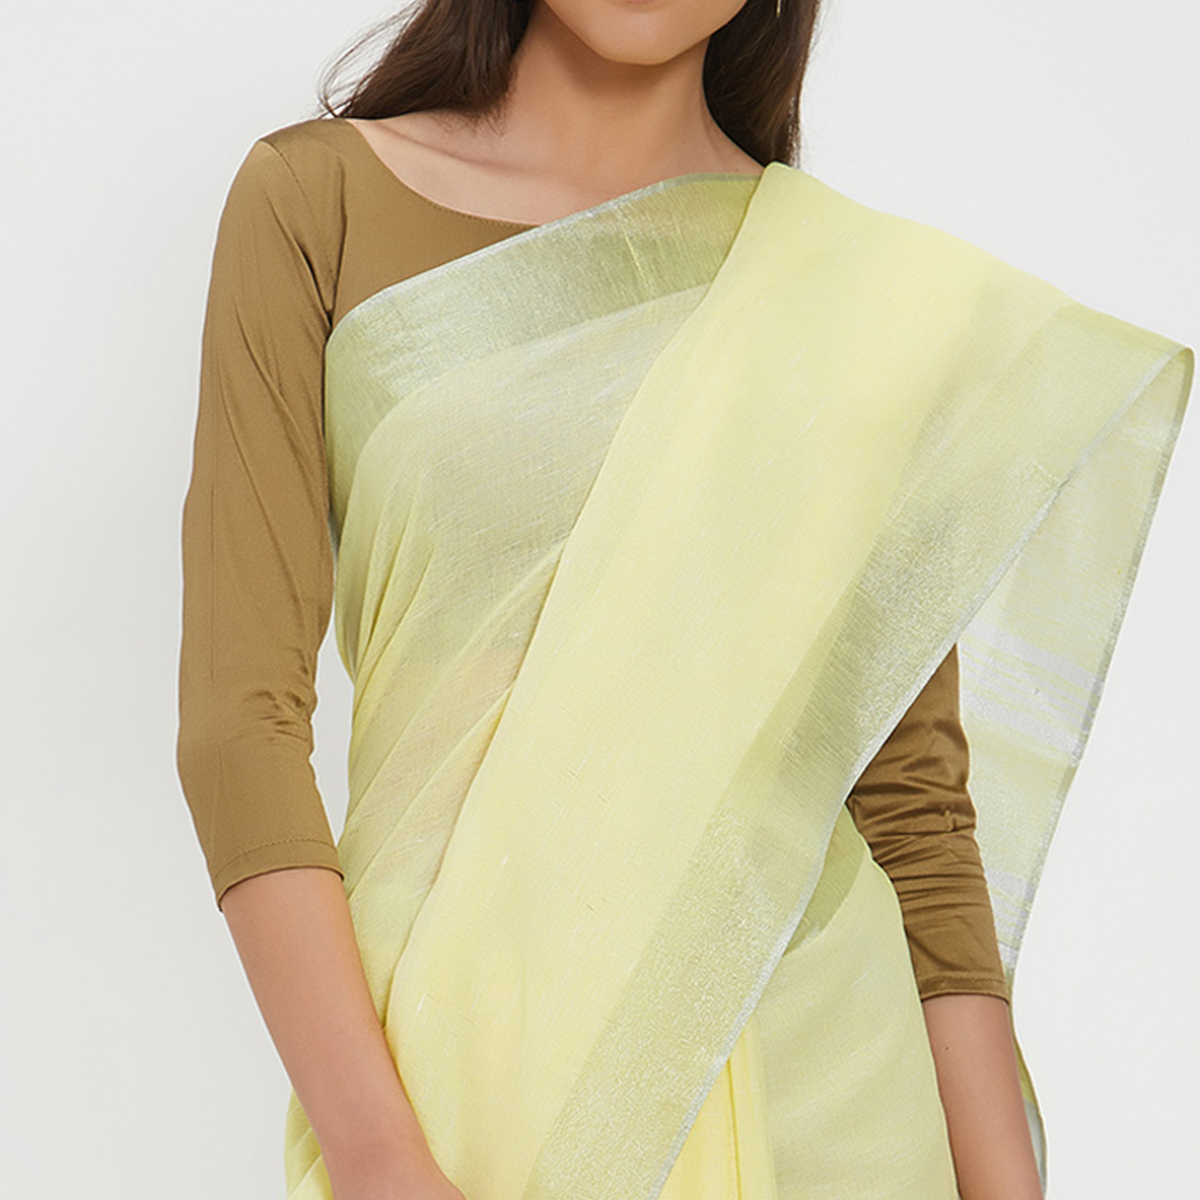 Invaluable Yellow Colored Casual Wear Linen Saree With 2 Blouse Pieces